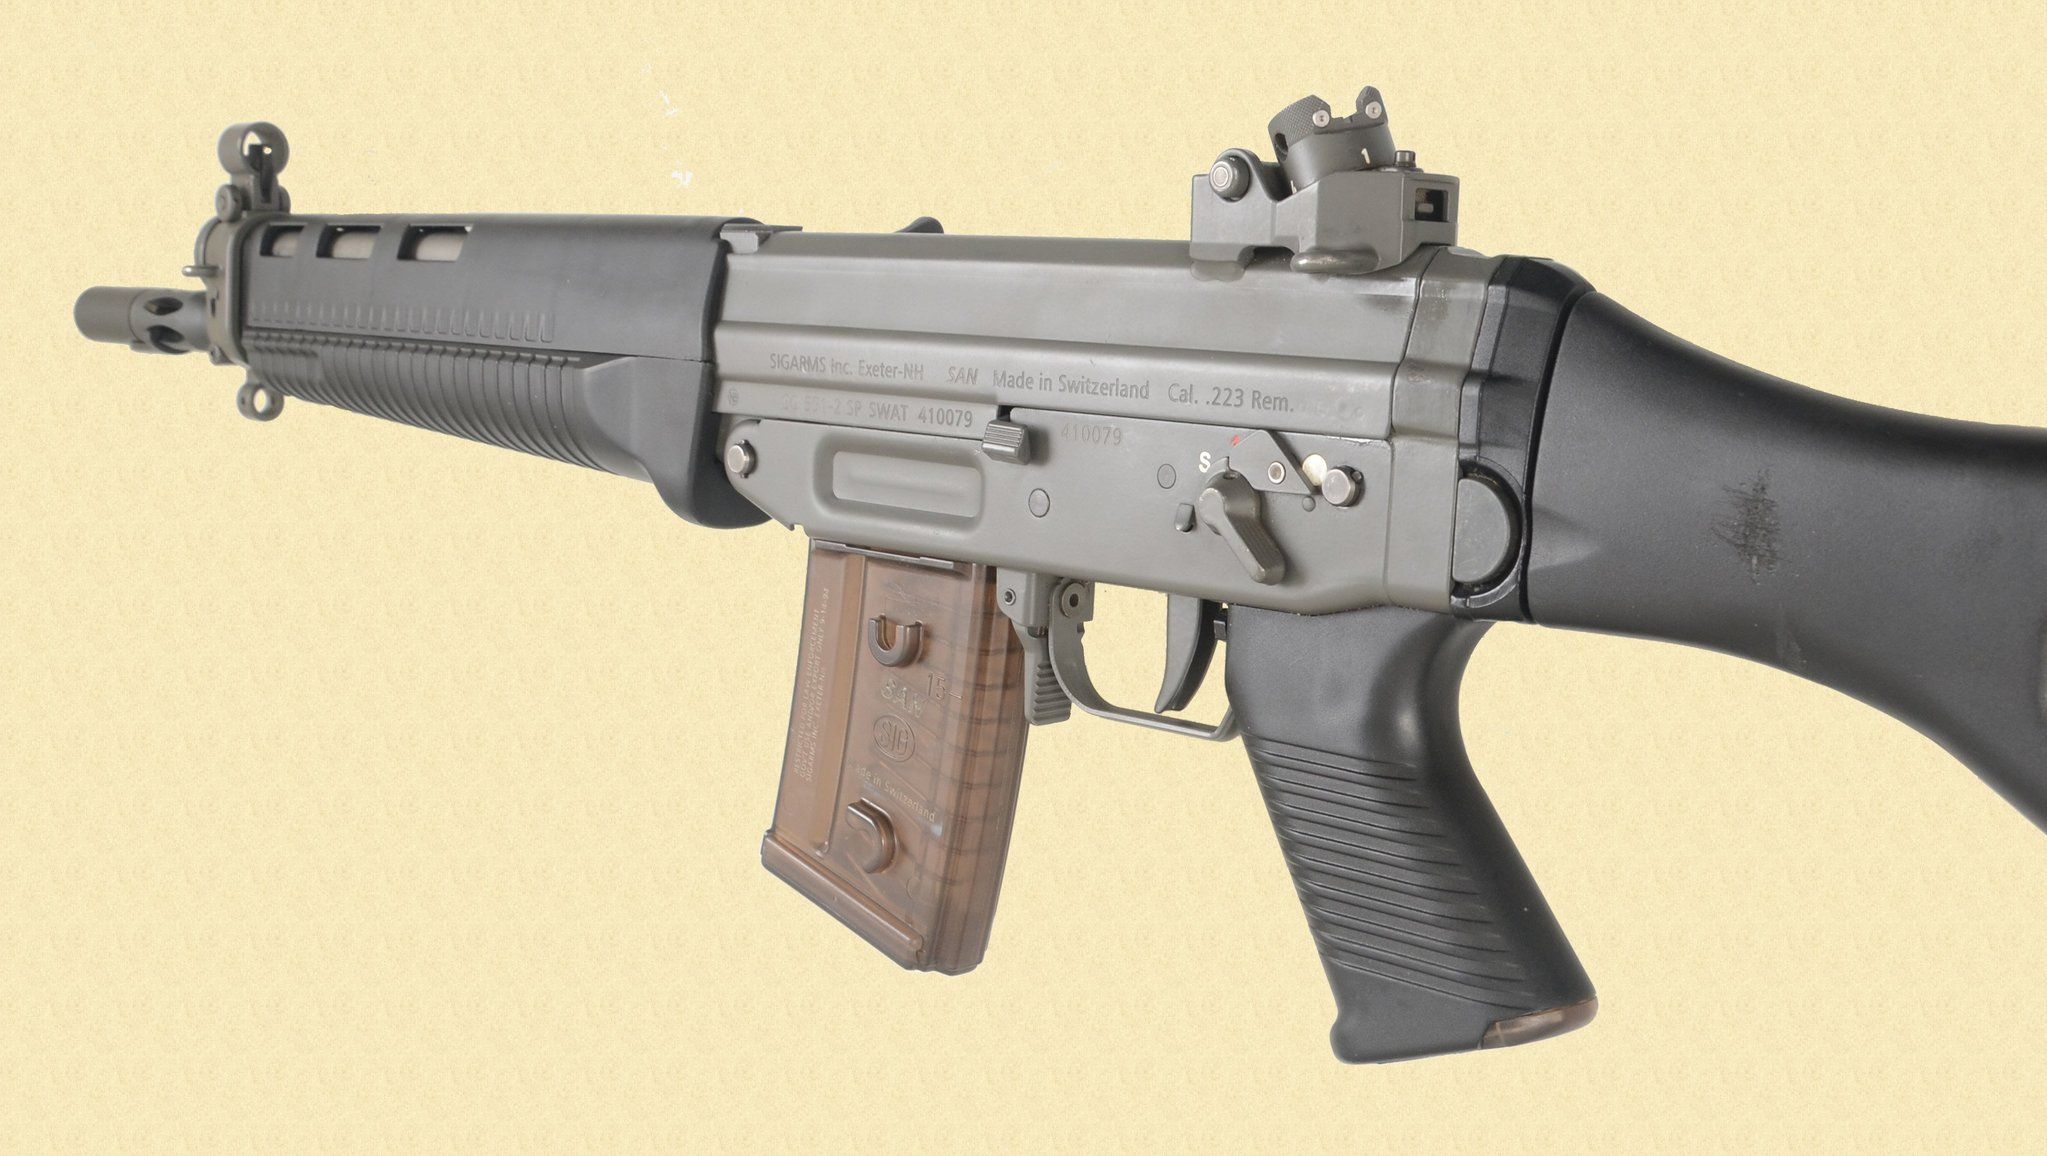 Sigarms Sg551 2sp Swat Weapon Pinterest Swat Weapons And Guns